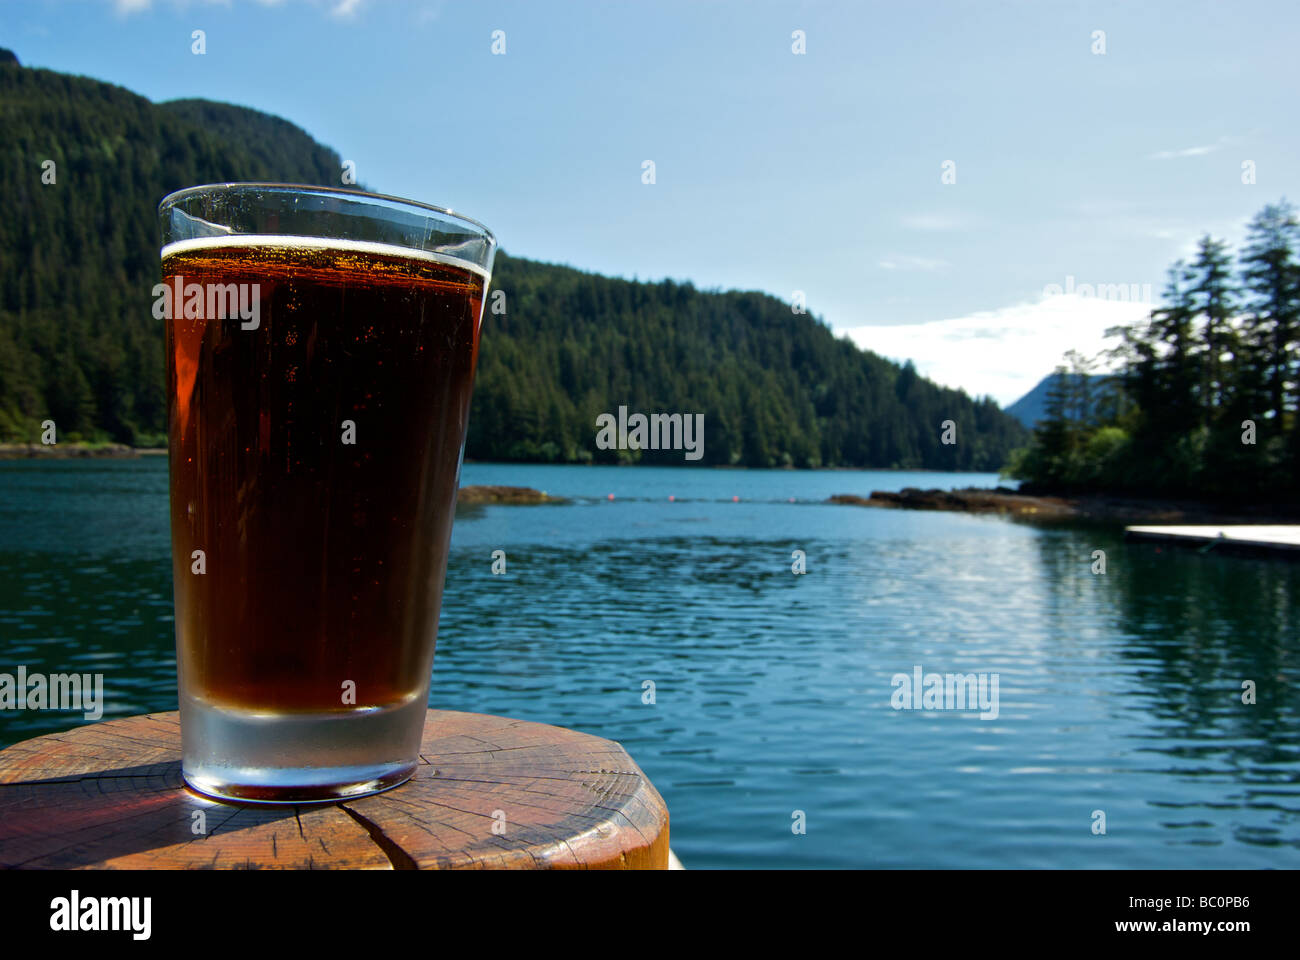 Heaven is a pint of ice cold beer in a chilled glass on a hot sunny day at a wilderness fishing resort Haida Gwaii - Stock Image